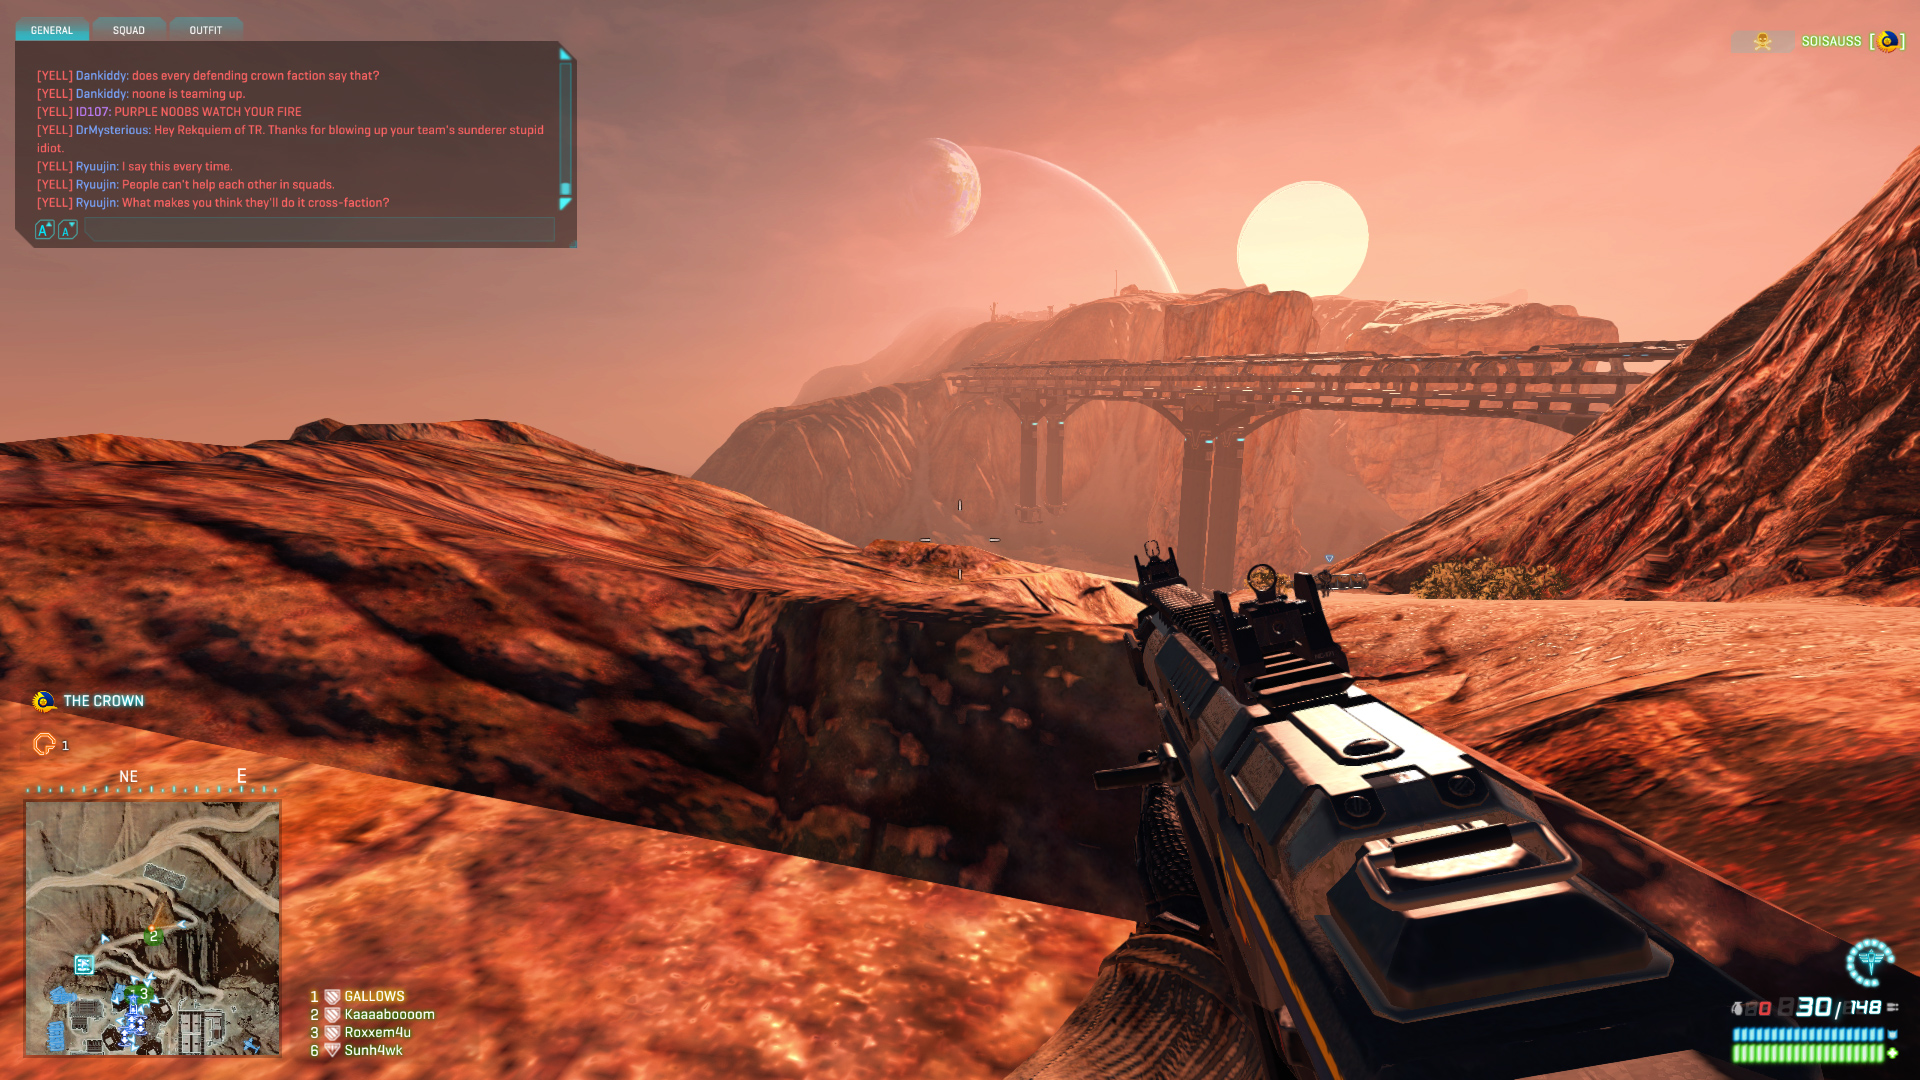 A soldier watches the sunset in Indar, an arid continent in Planetside.